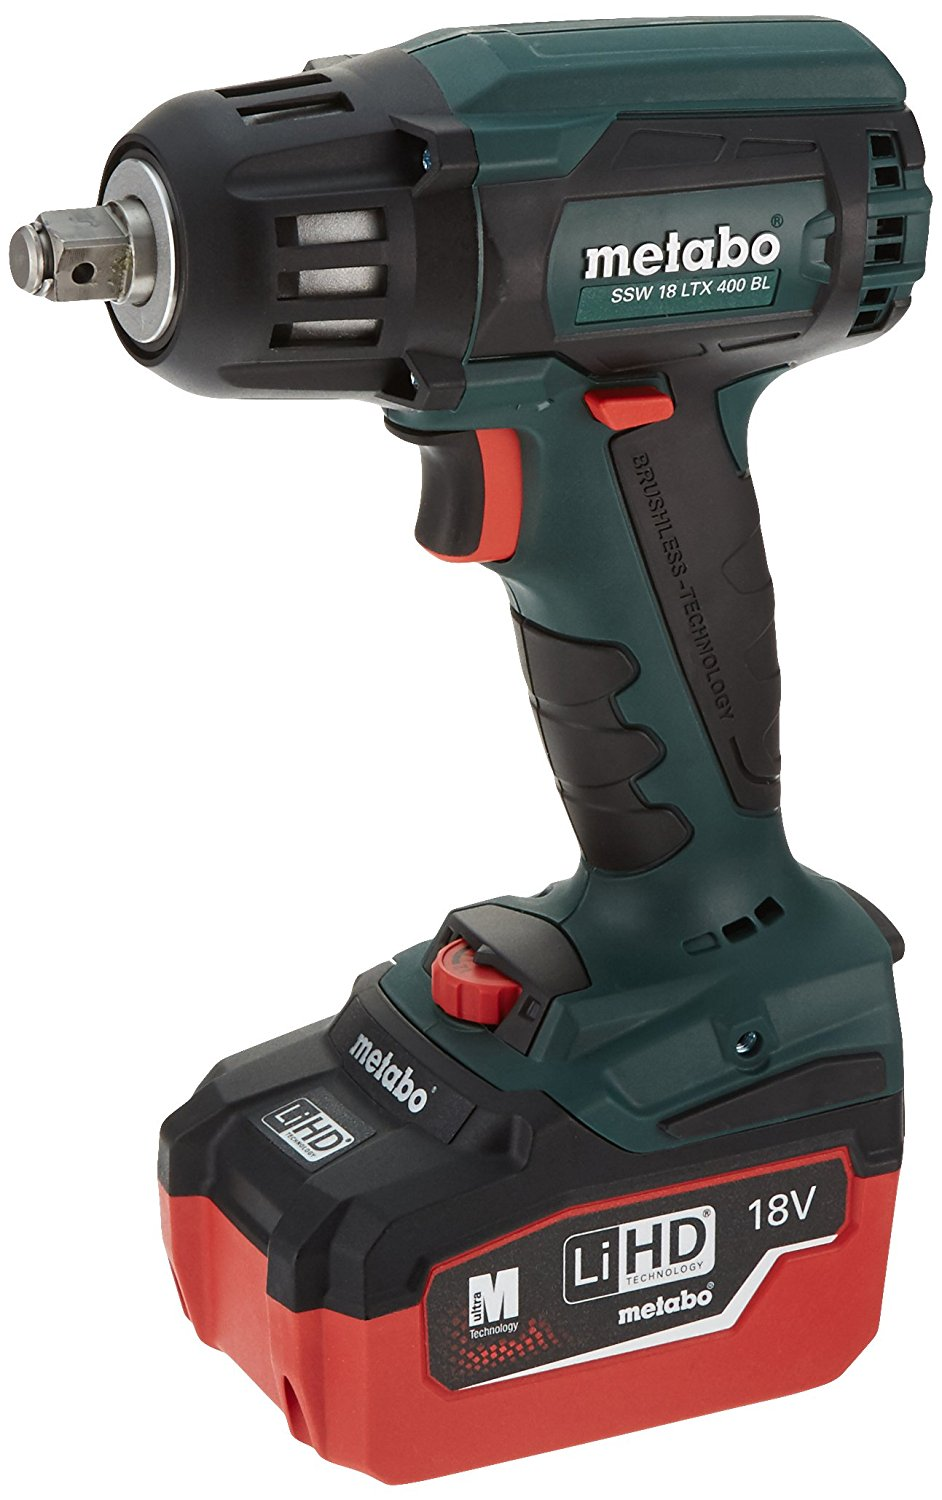 metabo 18v brushless impact wrench review